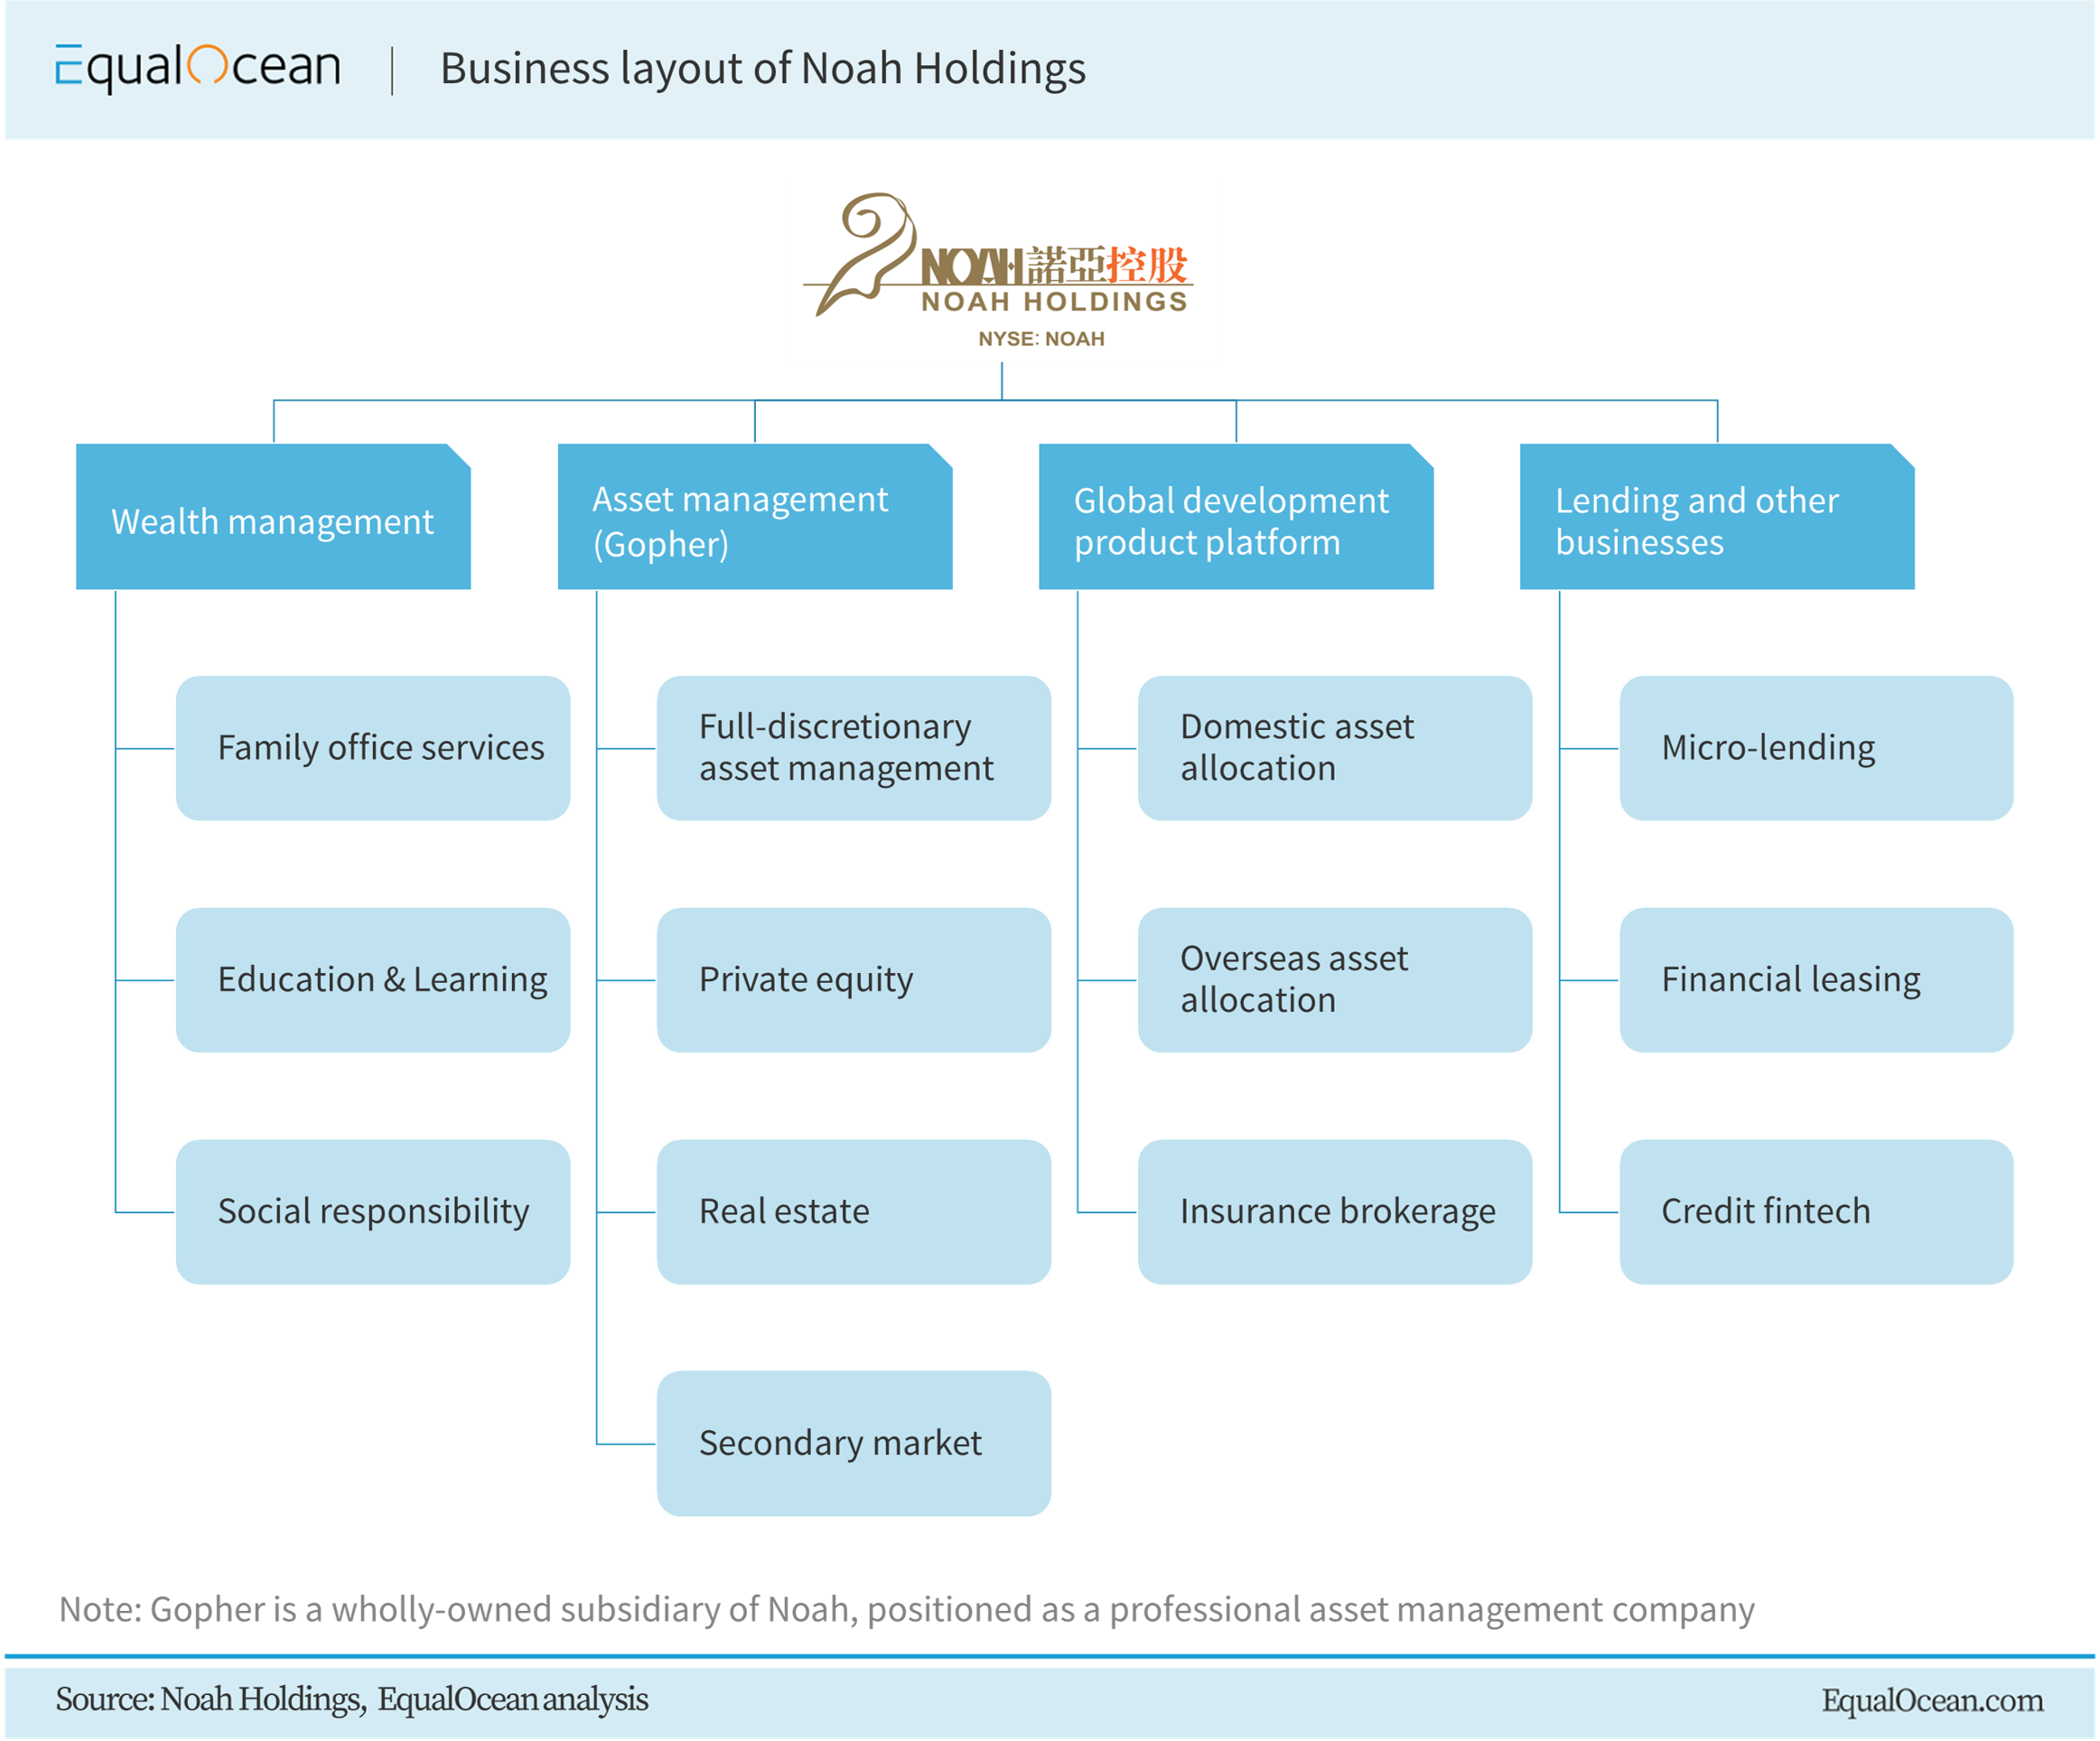 Business layout of Noah Holdings